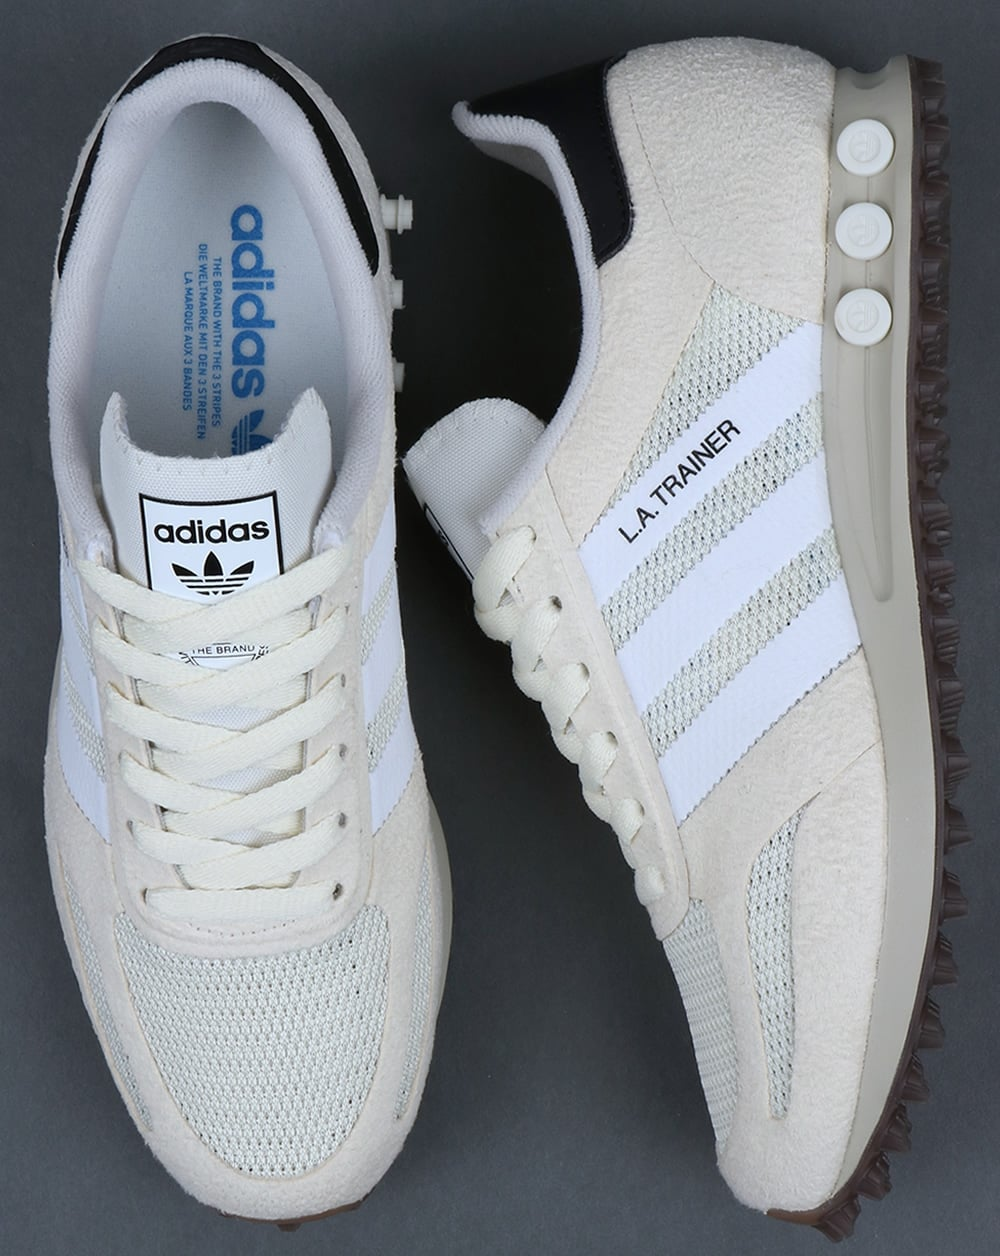 low priced 00713 164bb adidas Trainers Adidas La Trainer OG Trainers Off White White Gum